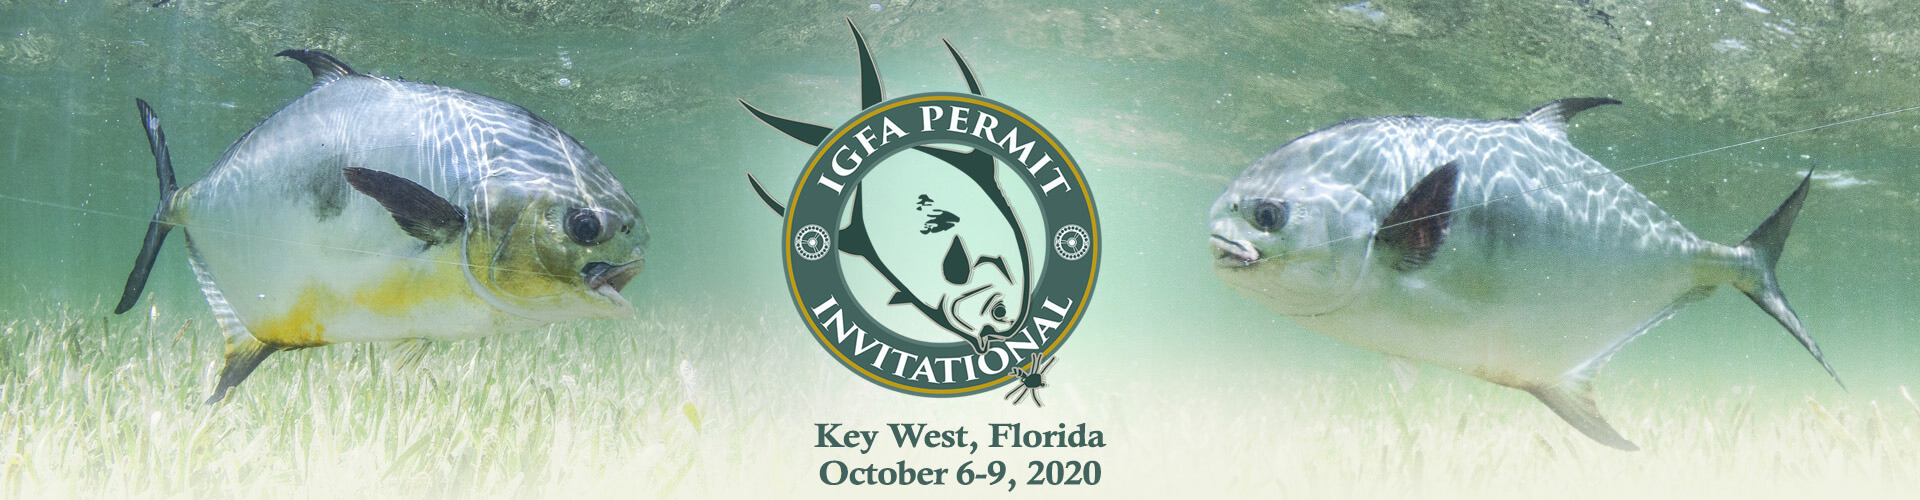 2020 IGFA Permit Invitational Header Image